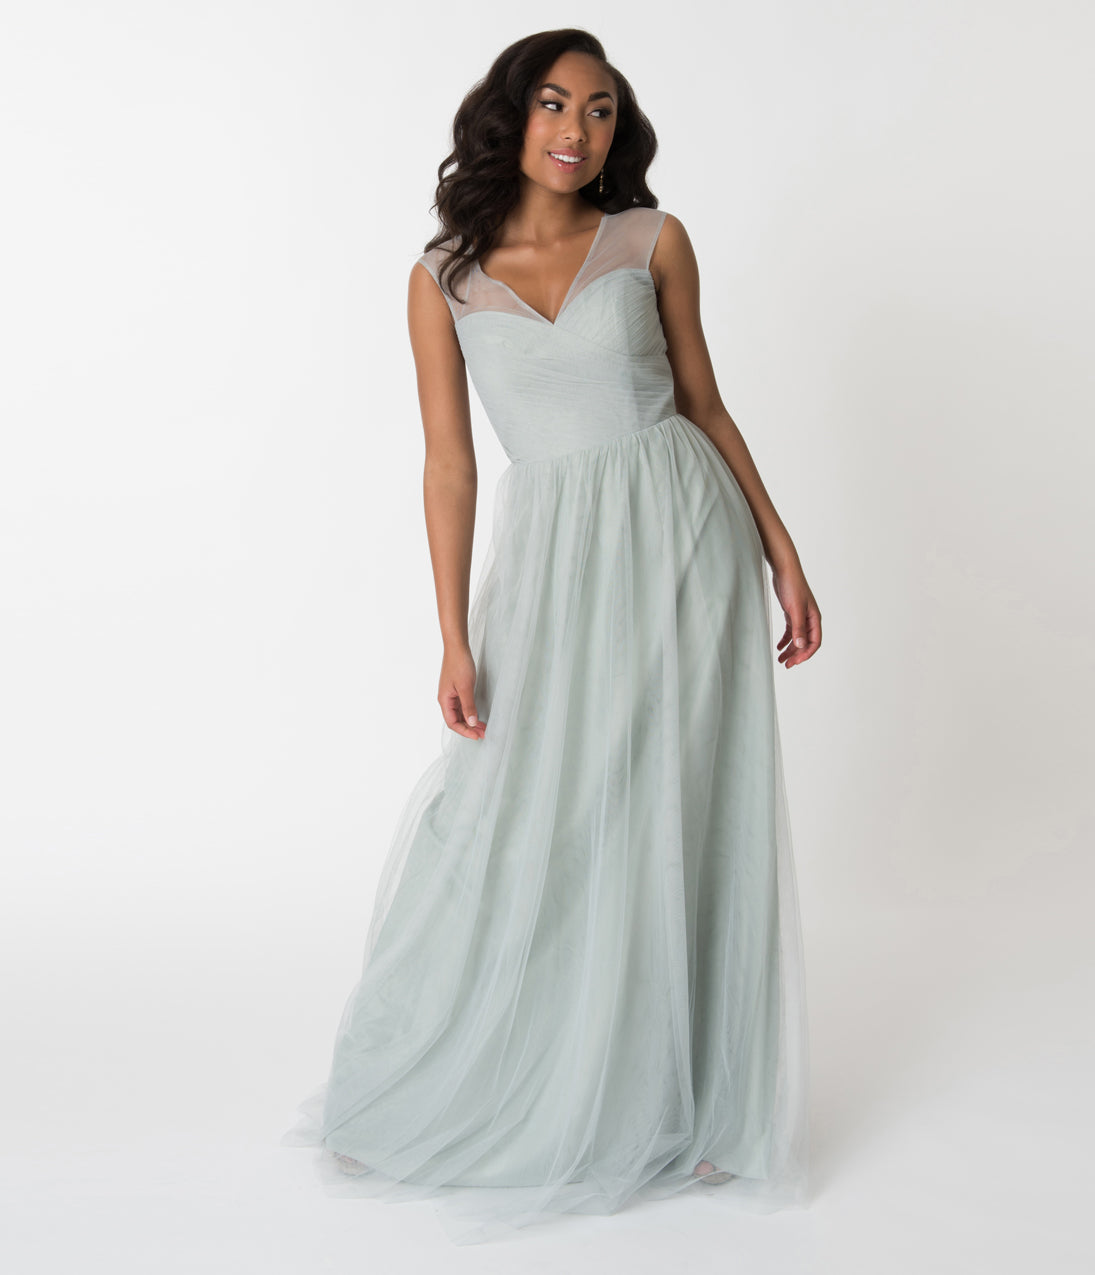 Vintage Evening Dresses and Formal Evening Gowns Eucalyptus Green Mesh Wrapped Sweetheart Neckline Long Dress $110.00 AT vintagedancer.com